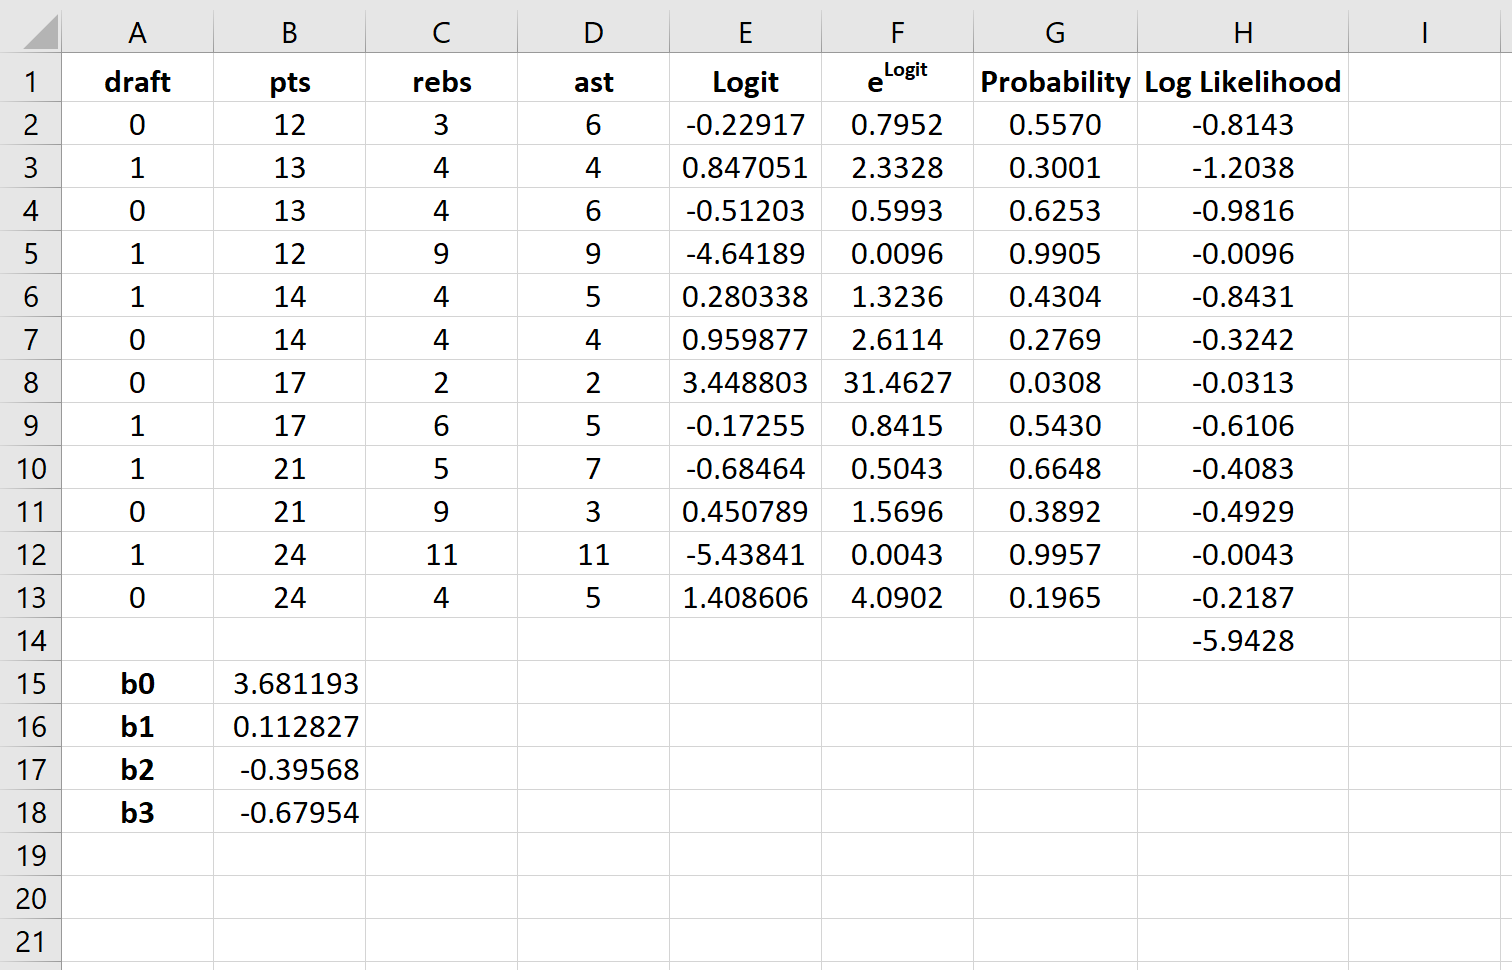 Logistic regression coefficients in Excel